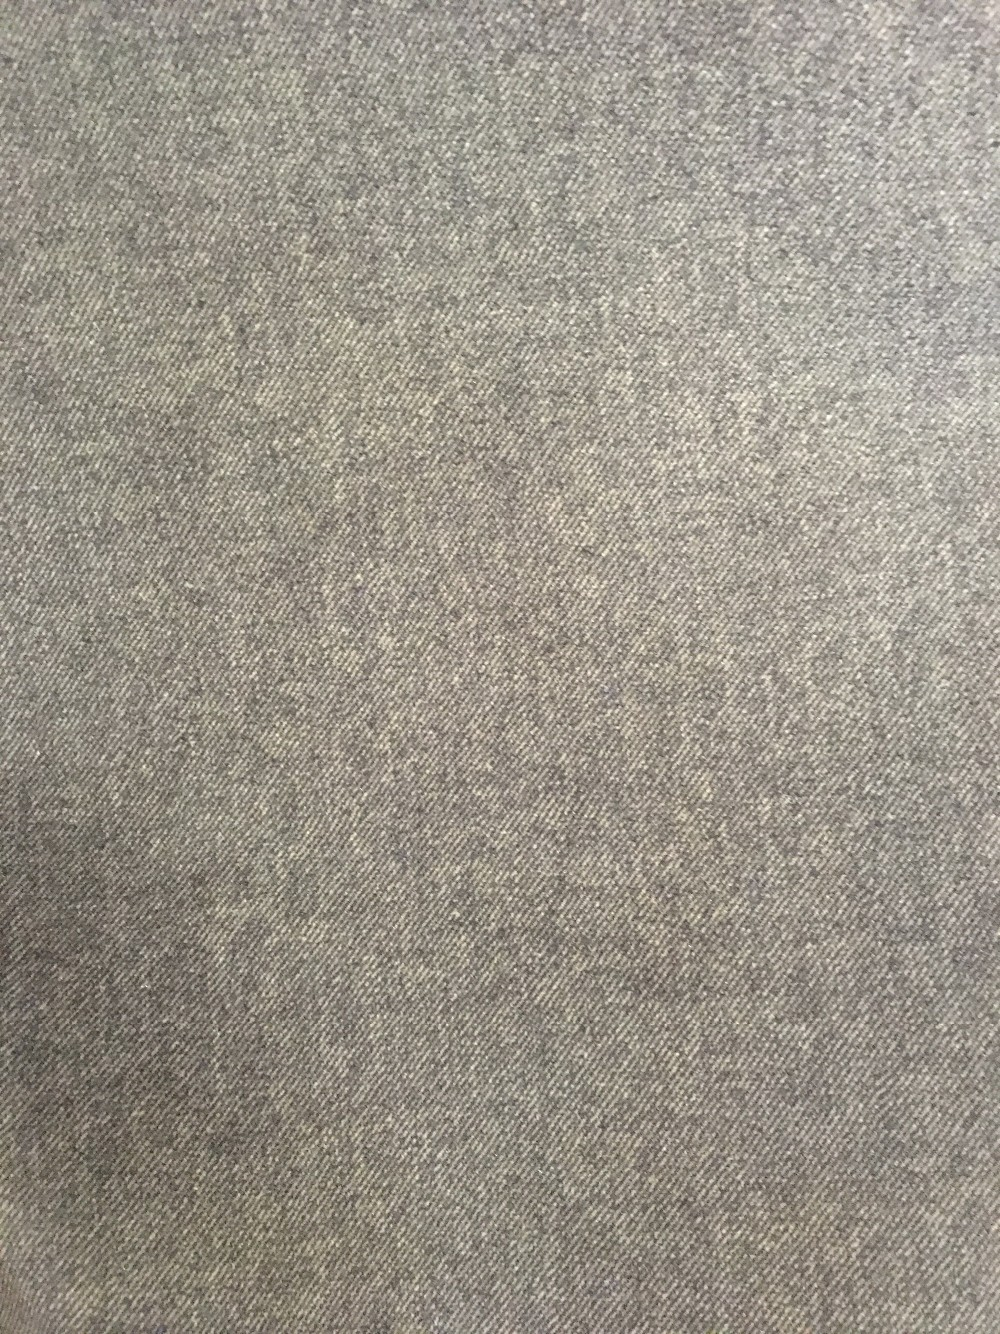 Upholstery Sofa Cover Fabric Names Elephant Suede